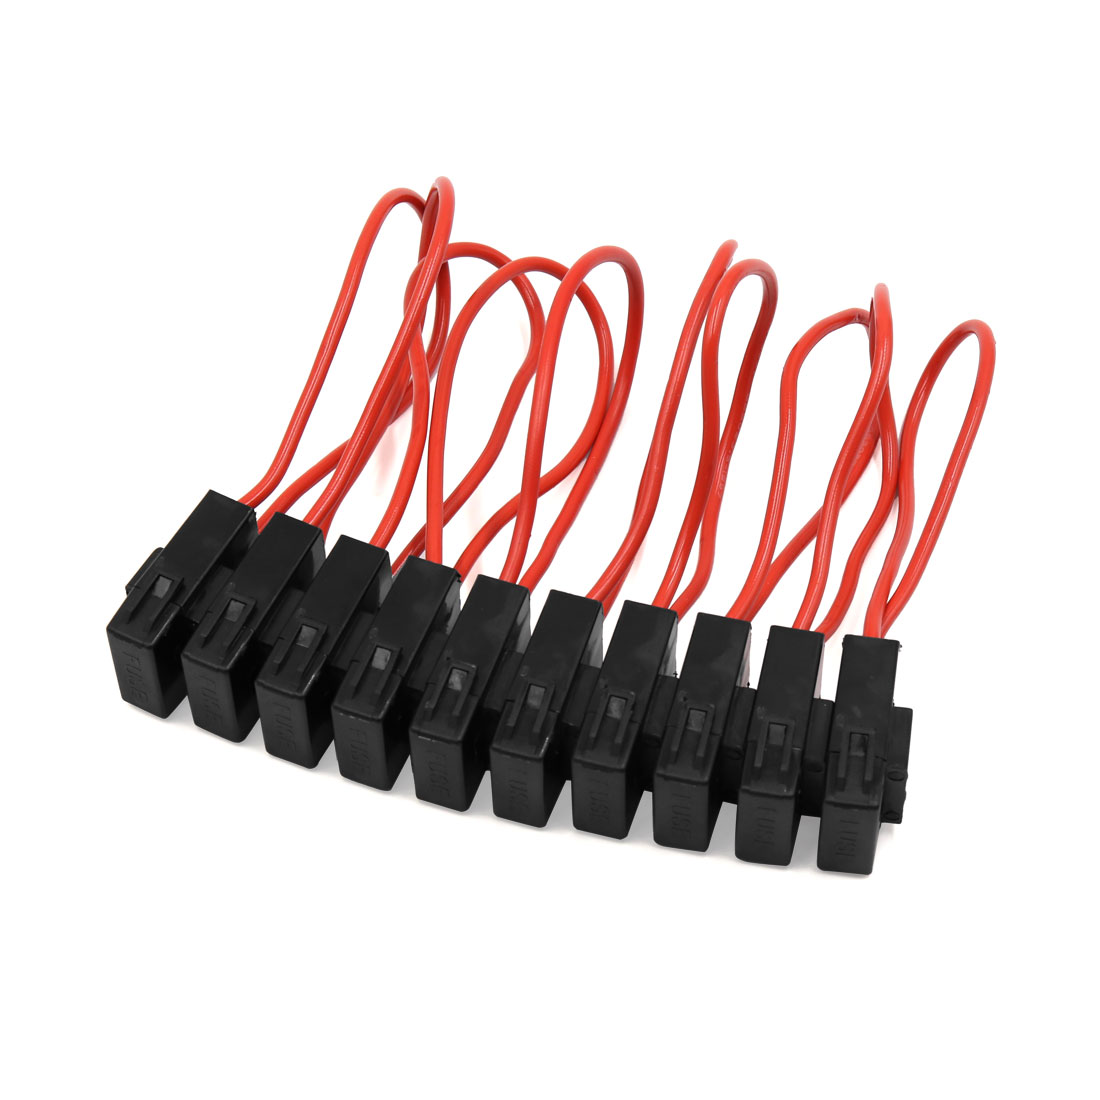 10pcs Red Wire Black Plastic Shell Cap Wiring Inline  Fuse Holder 15A